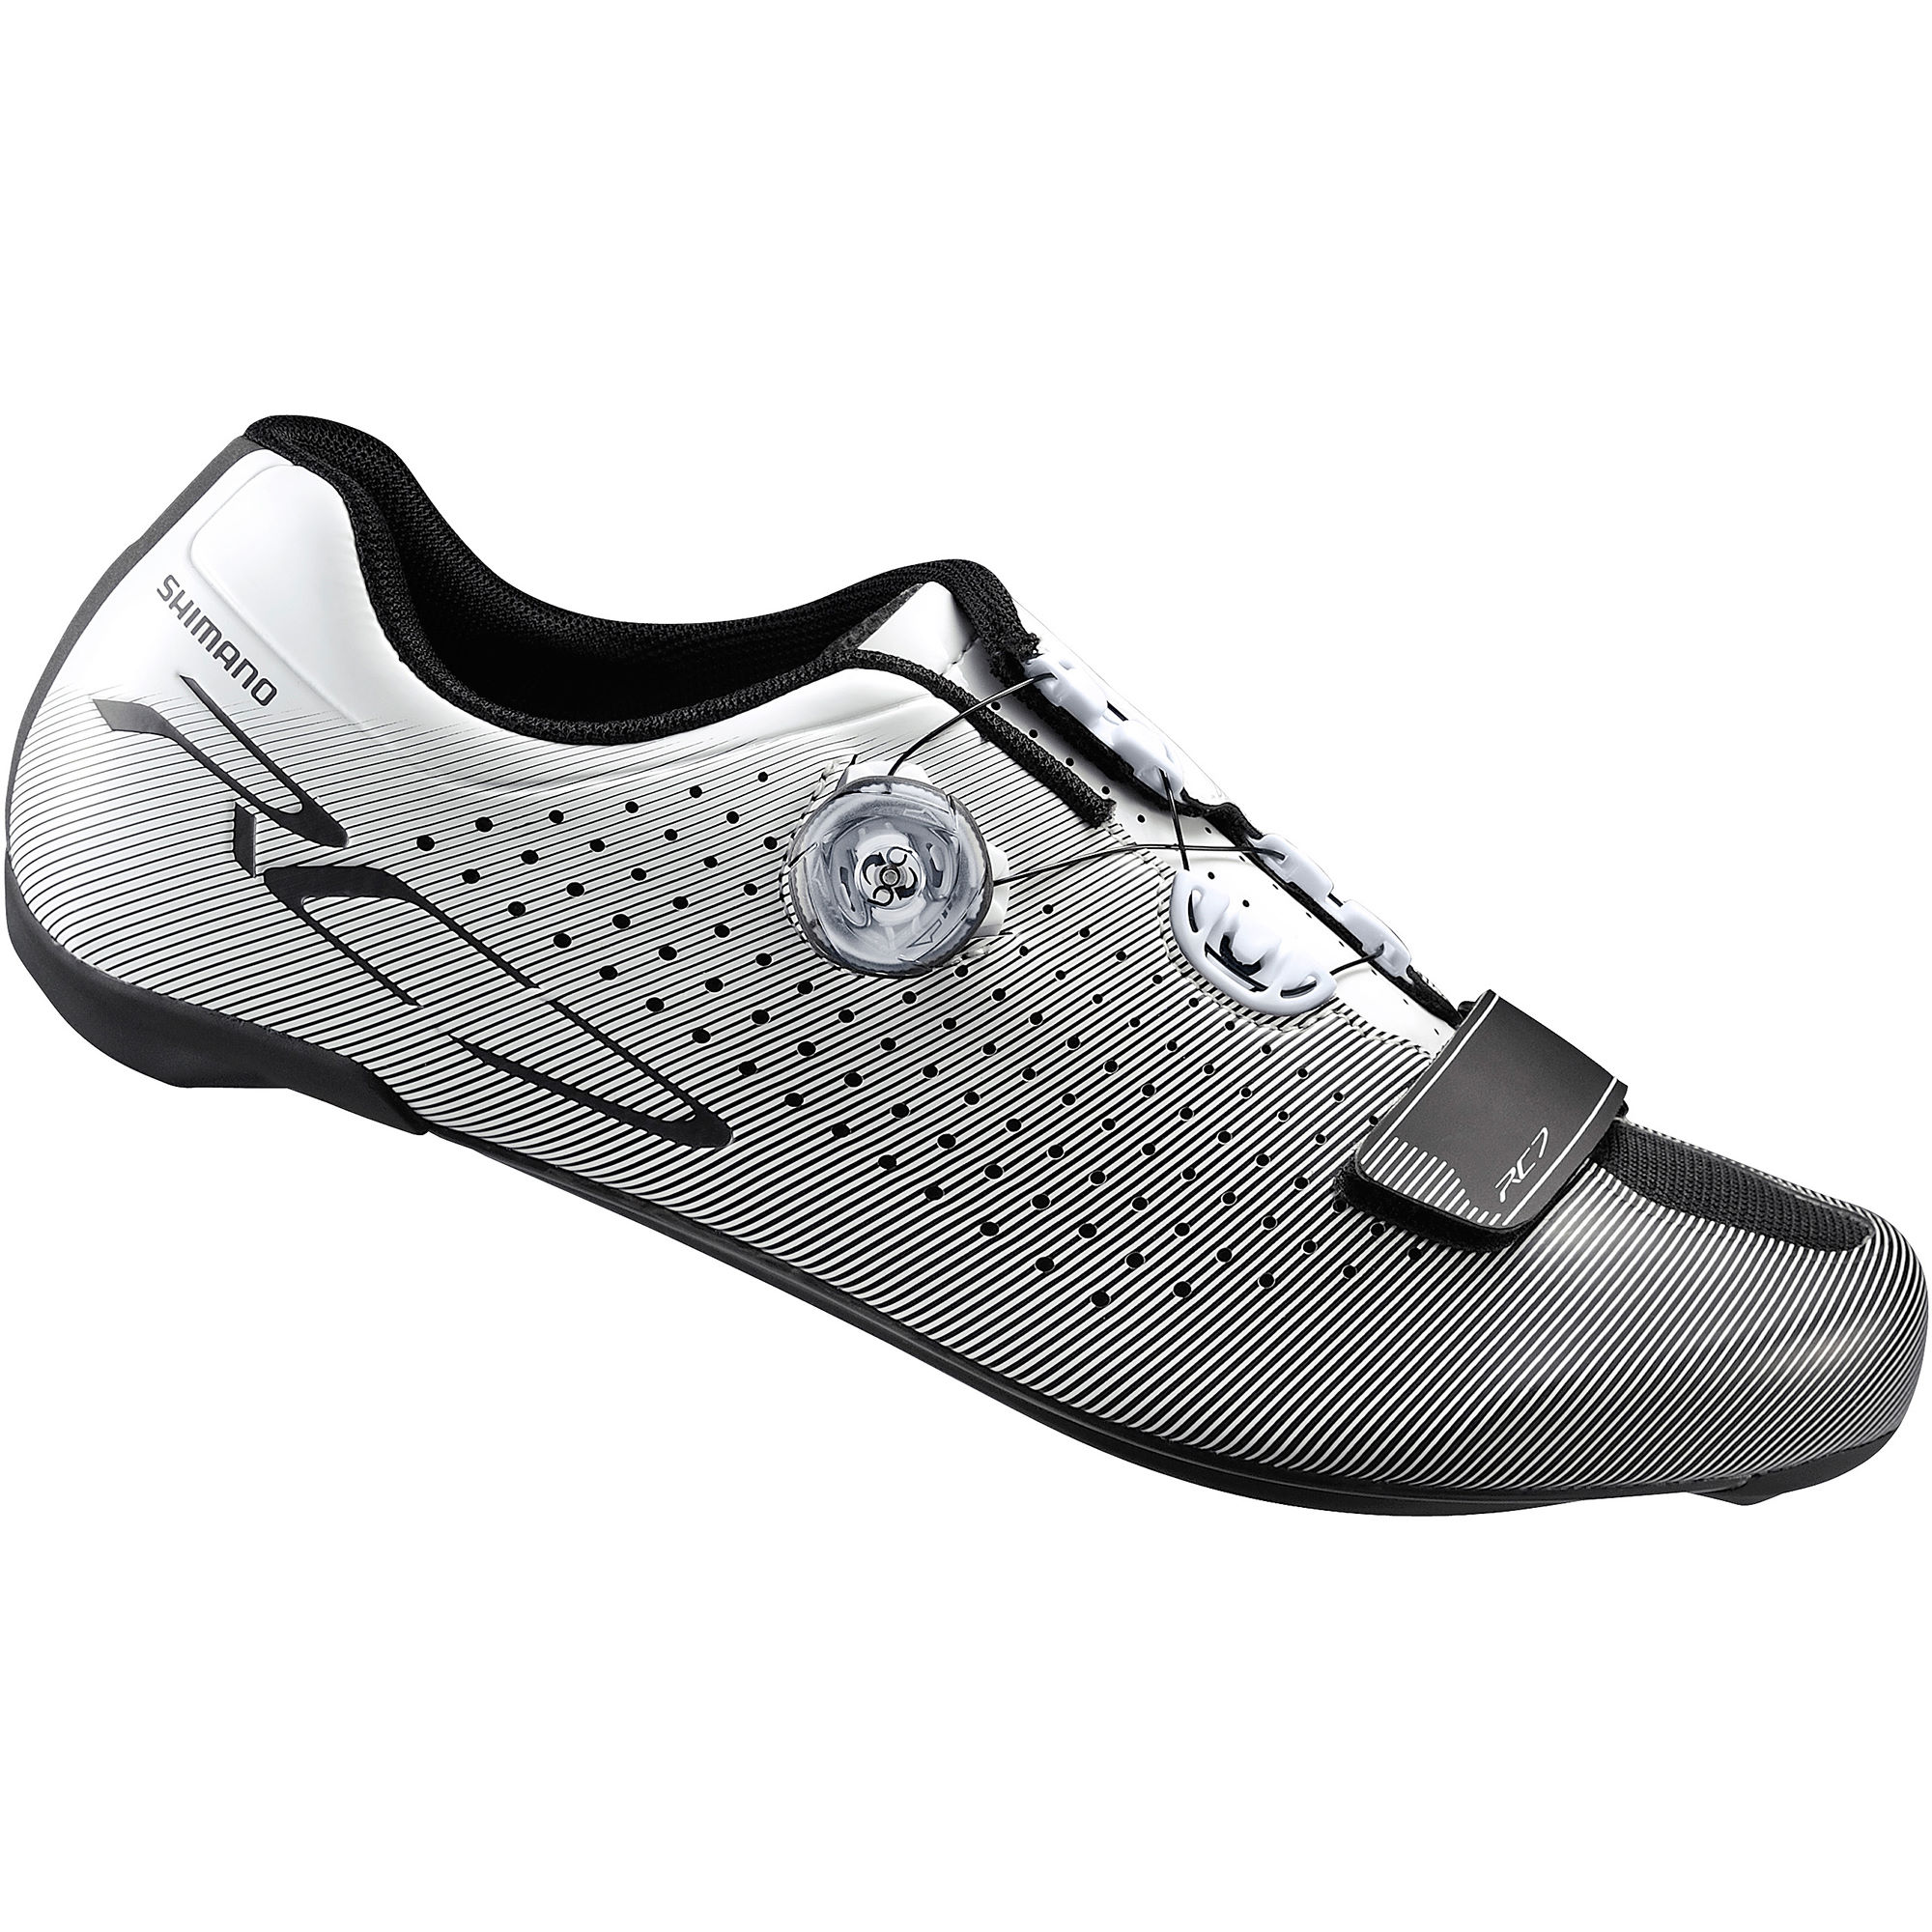 Shimano RC7 SPD-SL Road Shoes